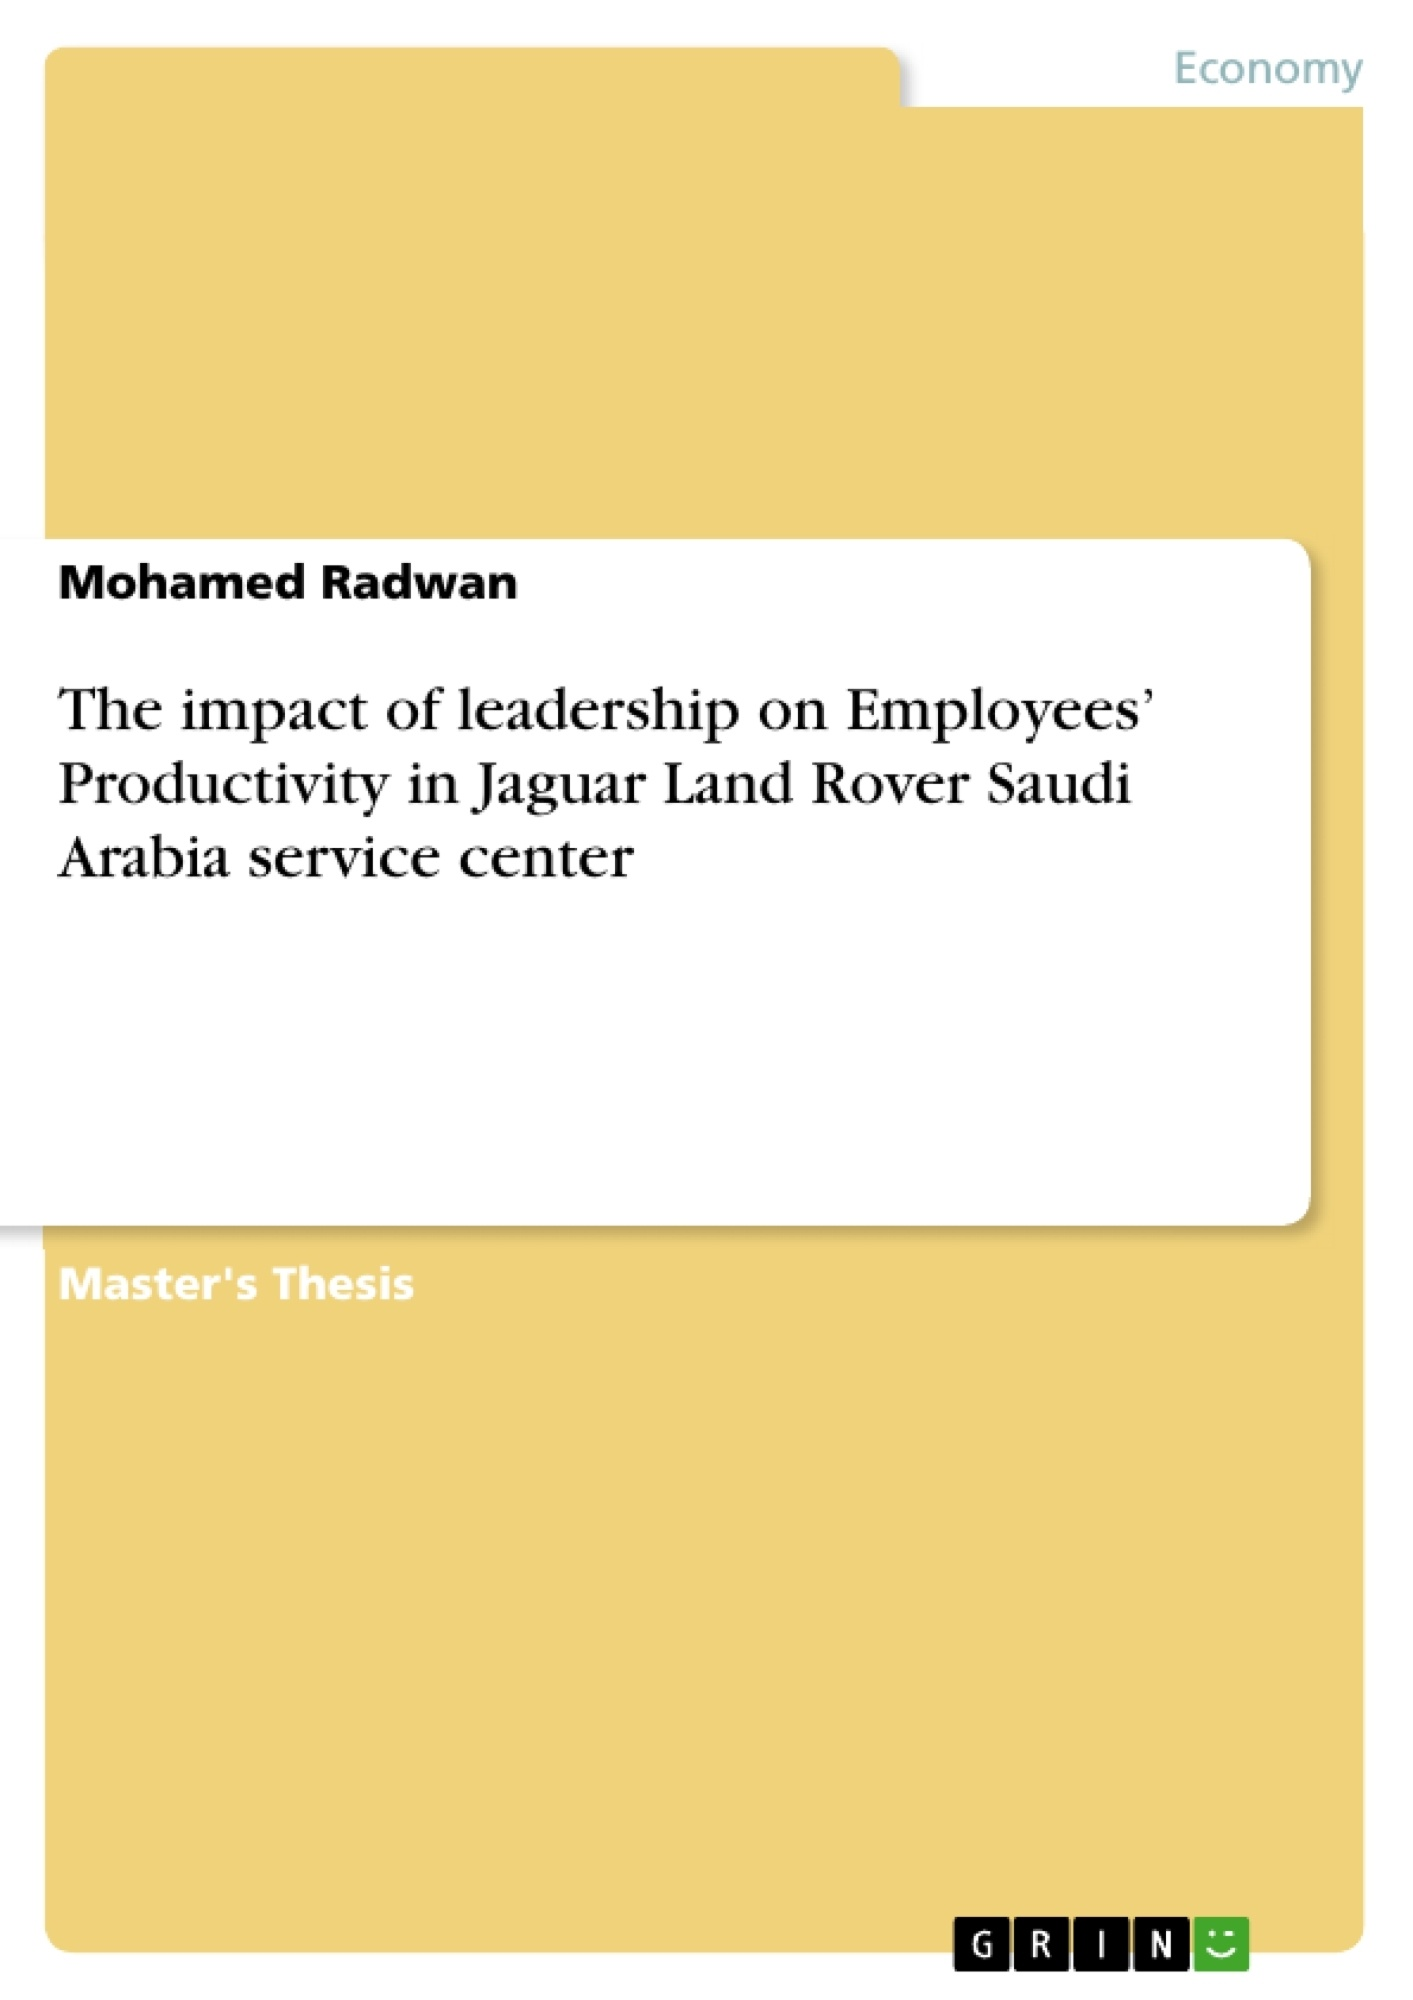 Title: The impact of leadership on Employees' Productivity in Jaguar Land Rover Saudi Arabia service center